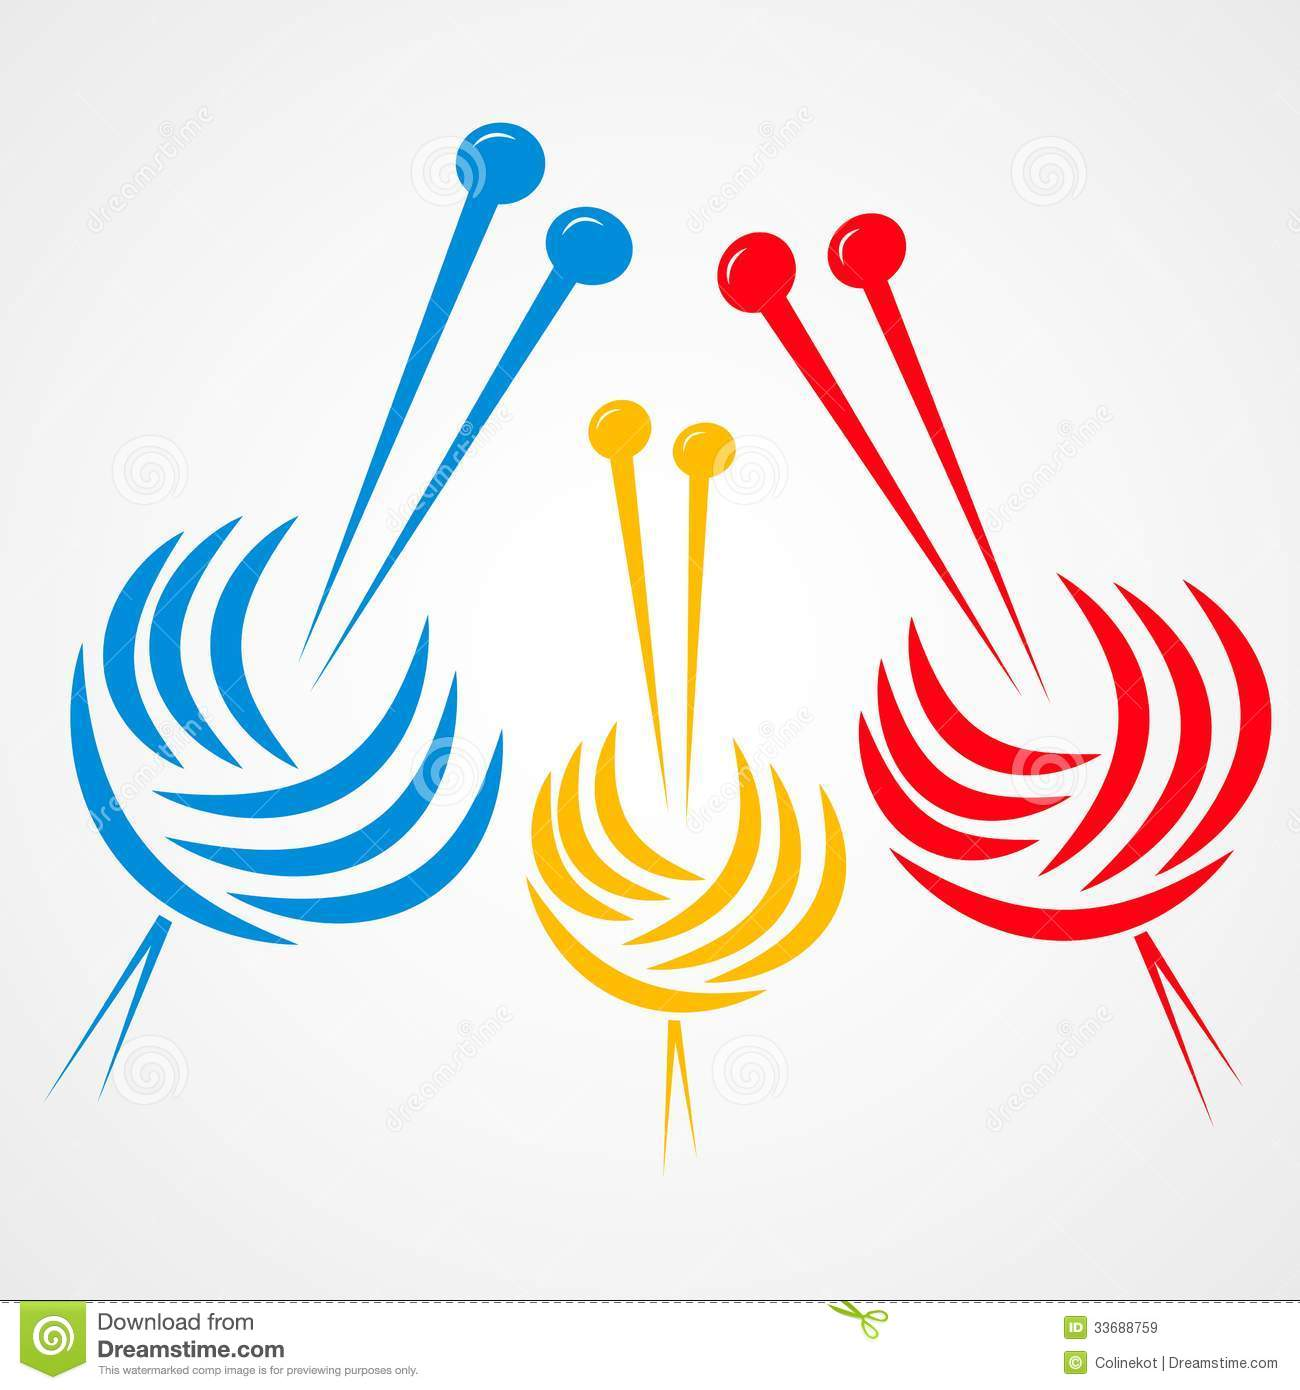 Knitting Images Free Clip Art : Knitting needles royalty free stock images image